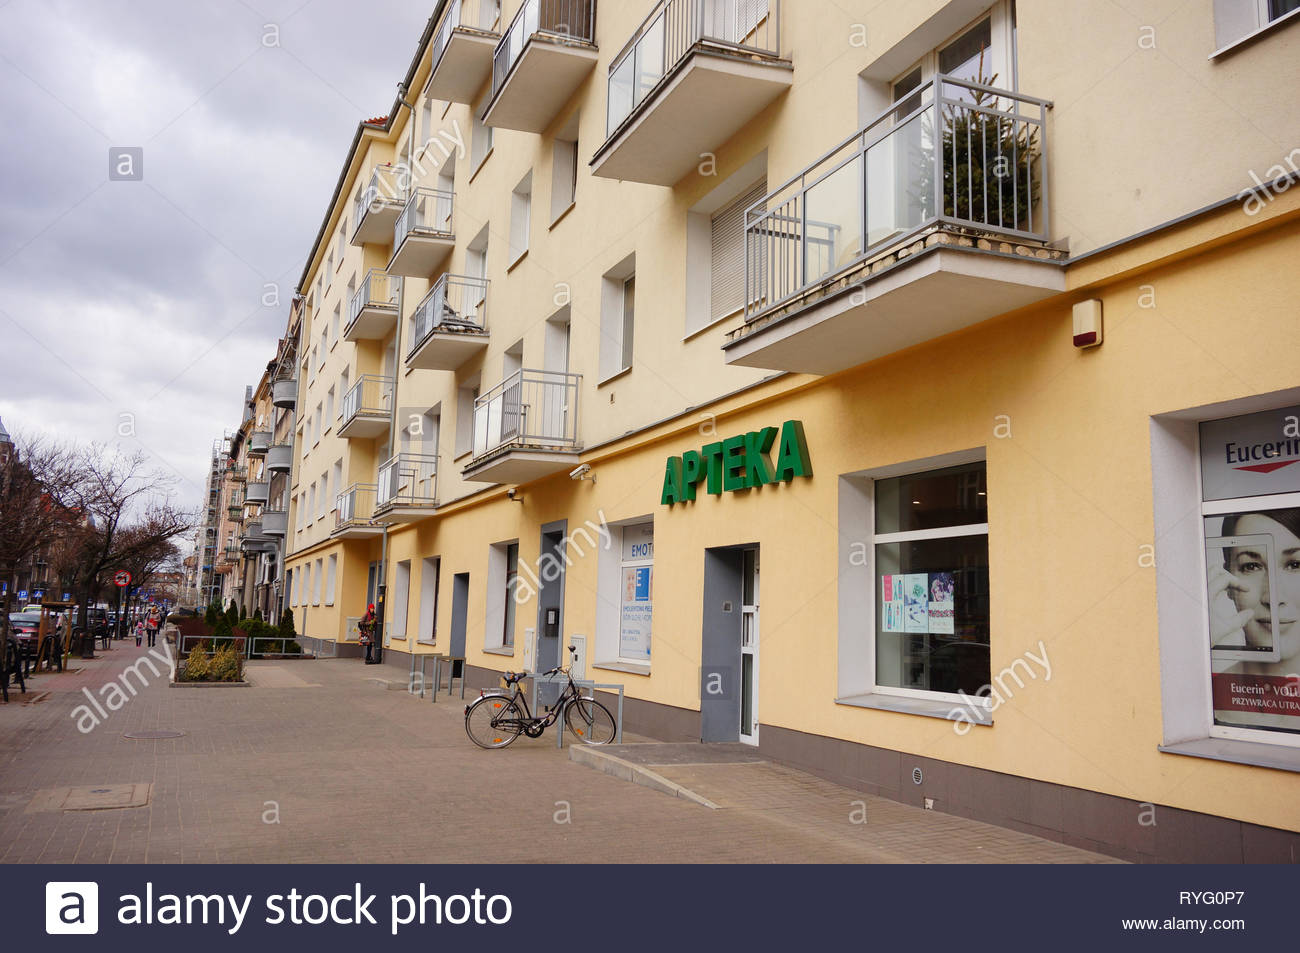 Poznan, Poland - March 8, 2019: Pharmacy store with parked bicycle in a apartment building by a sidewalk on the Slowackiego street. Stock Photo